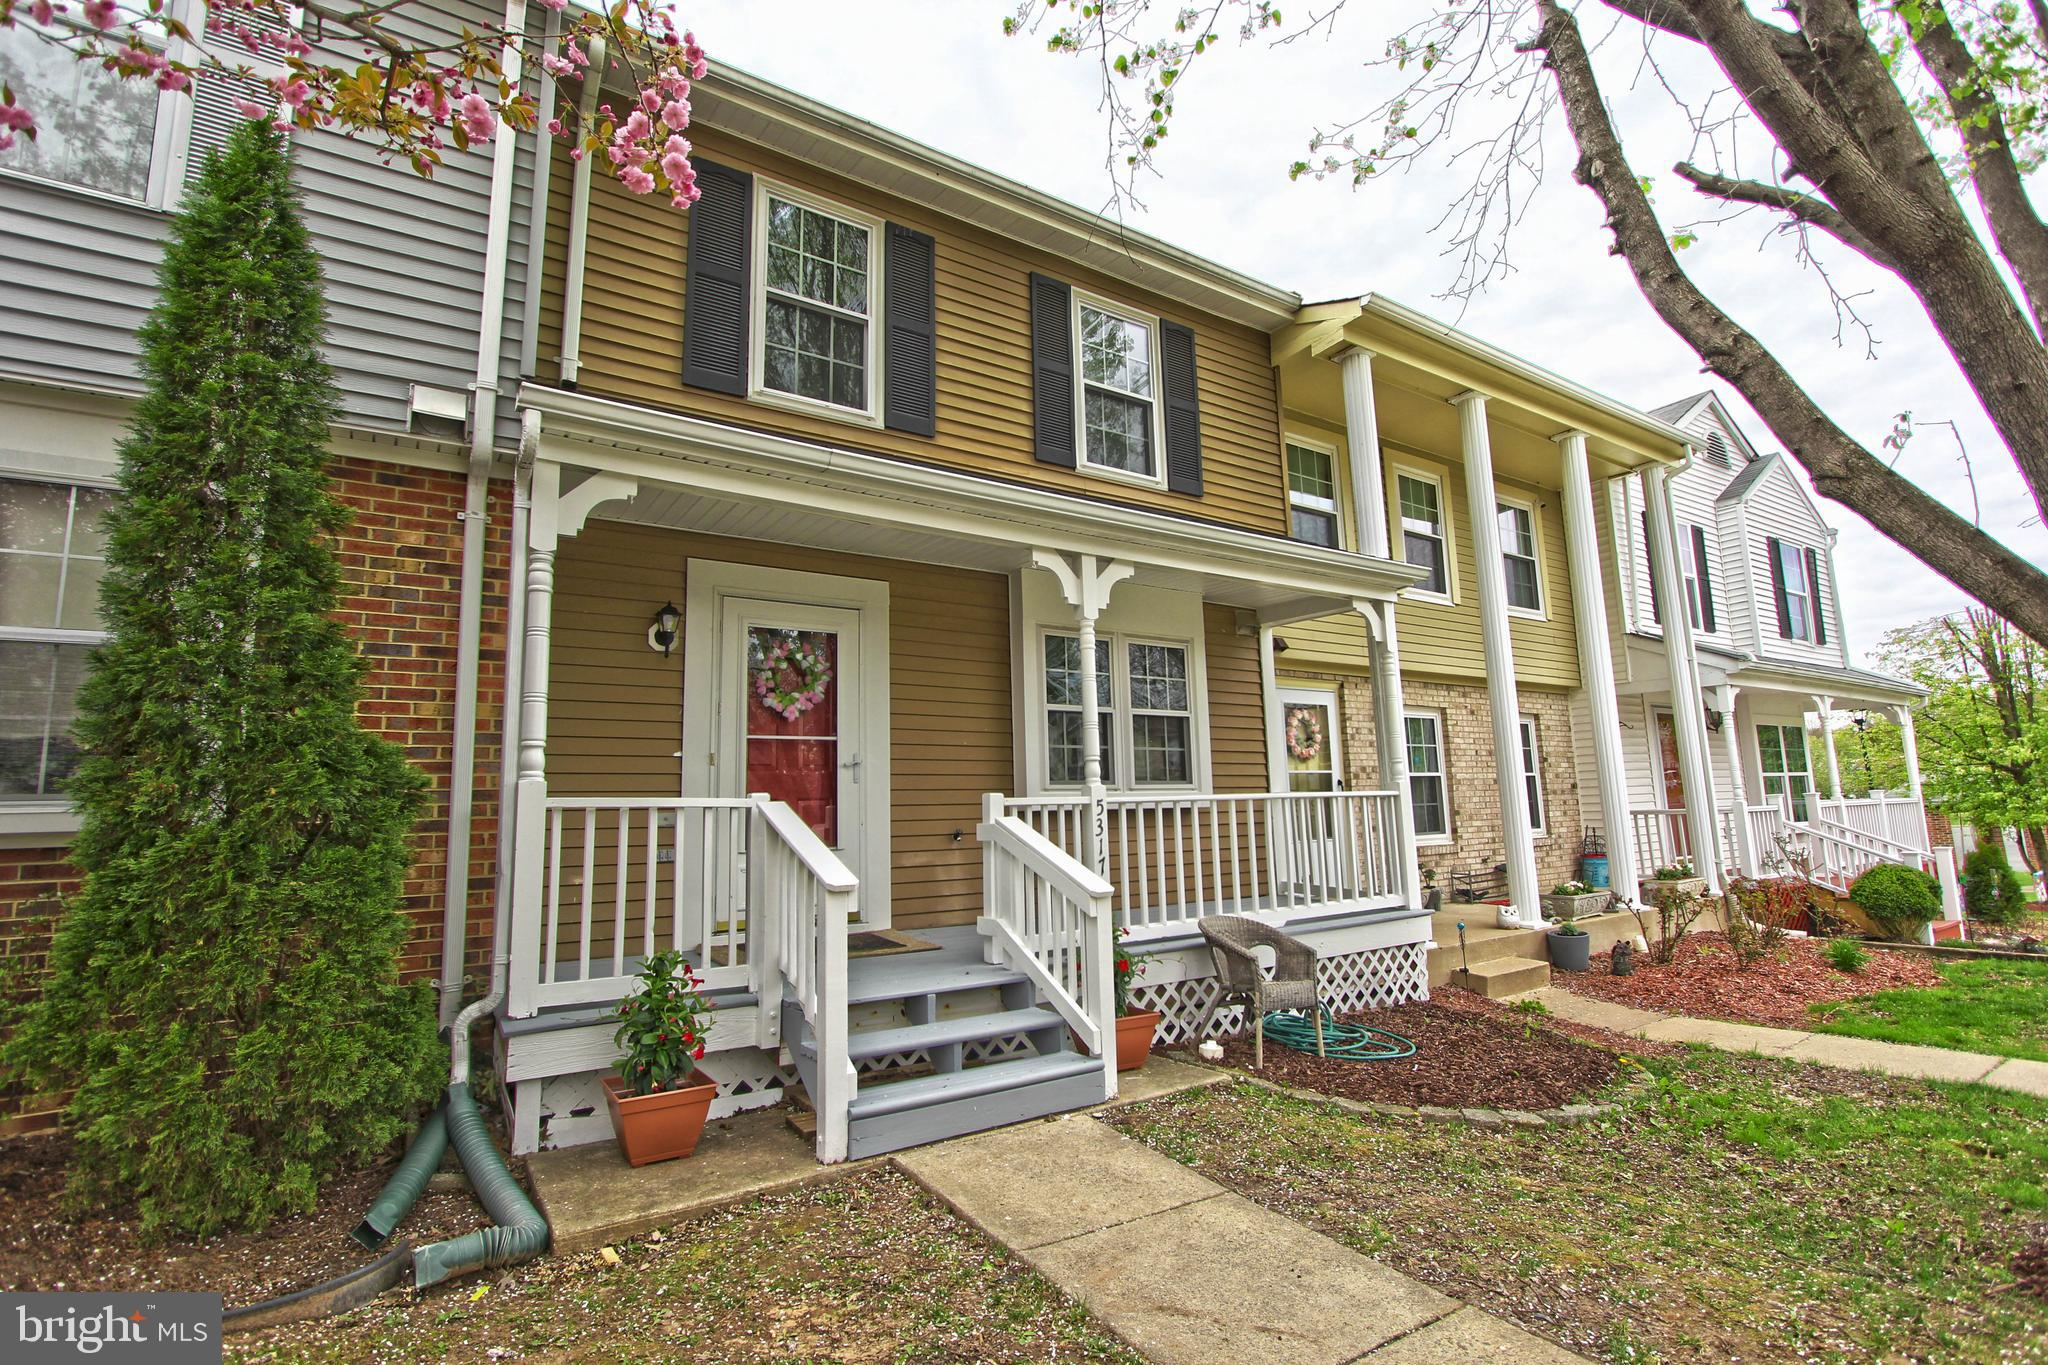 Move in ready spacious town home features three finished levels, 3 bedrooms, 2 full and 2 half bathrooms. NEW roof, NEW HVAC, NEW Washer & Dryer, NEW Water Heater, NEW gutters, NEW interior paint, NEW carpet. Stainless Steel appliances, gas cooking, gas fireplace. Desirable neighborhood w/ plenty of open space. Close to I-95, 234, shopping, restaurants & parks!